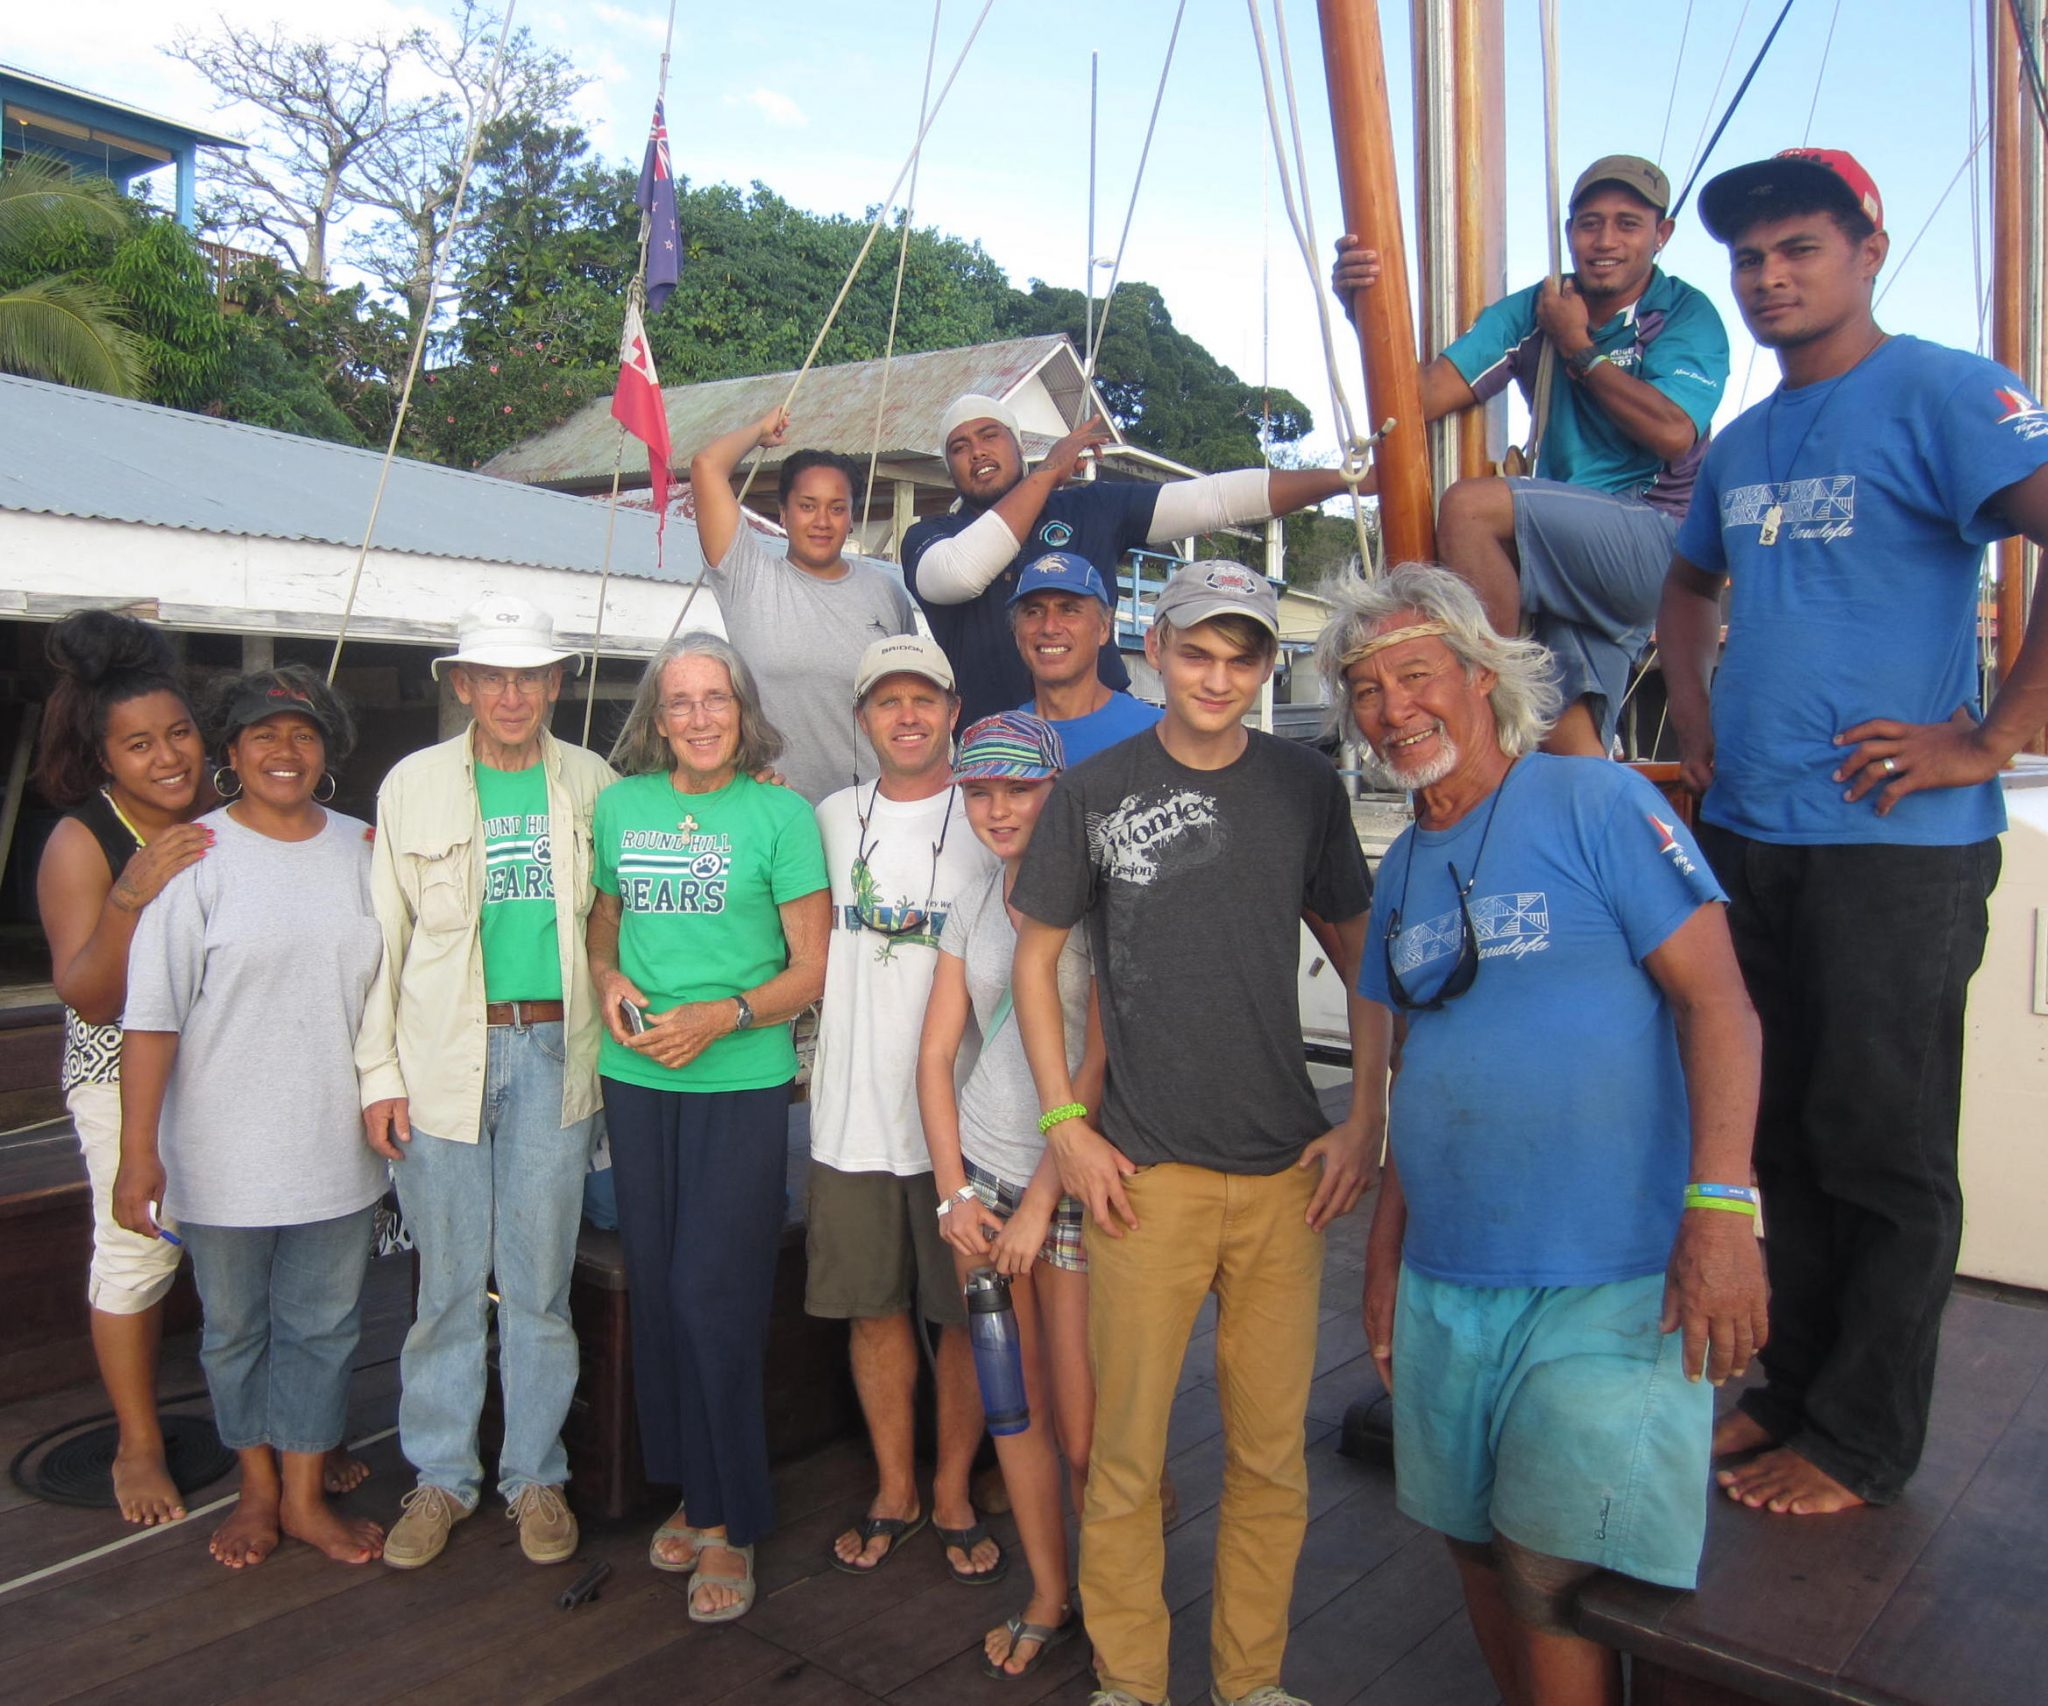 88. Sailors for Christ and the crew of the Vaka pose together after a memorable sail